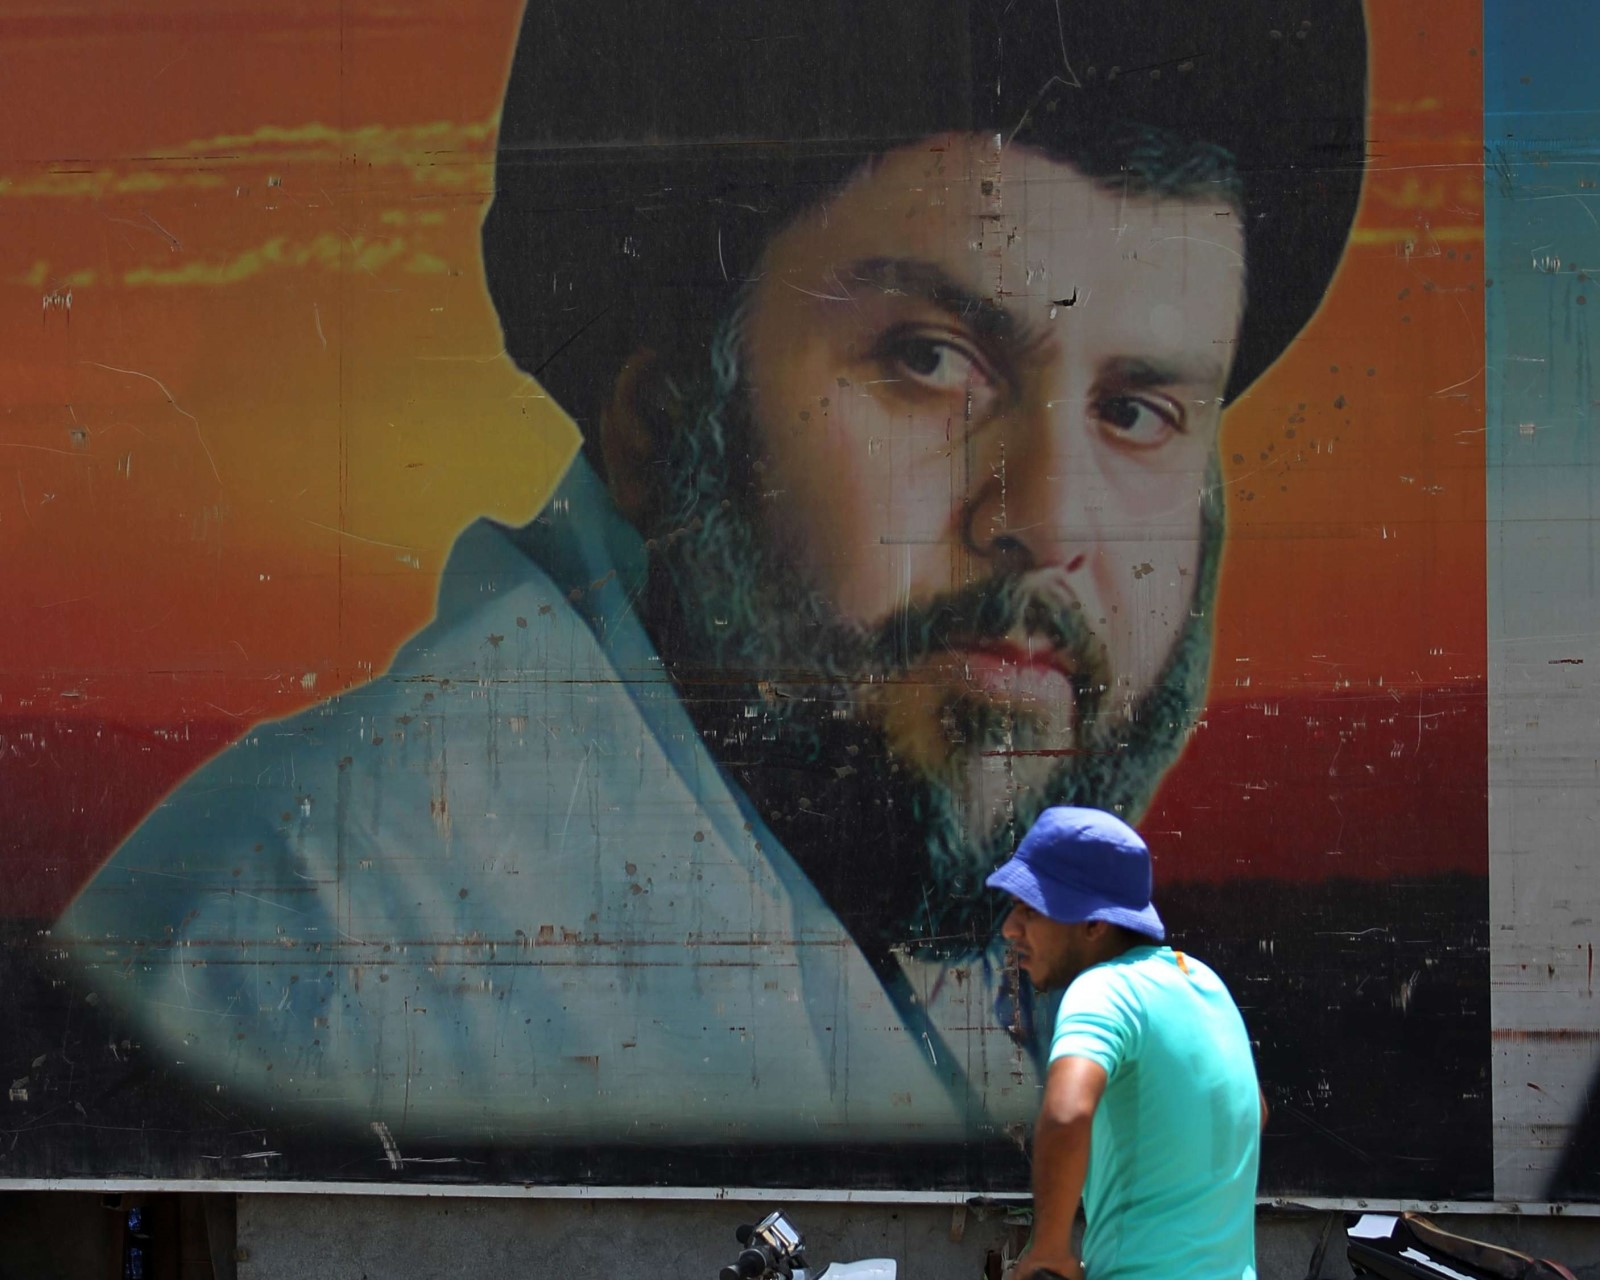 An Iraqi man walks past a poster of Shia cleric Moqtada Sadr in Sadr City, east of Baghdad. (AFP)